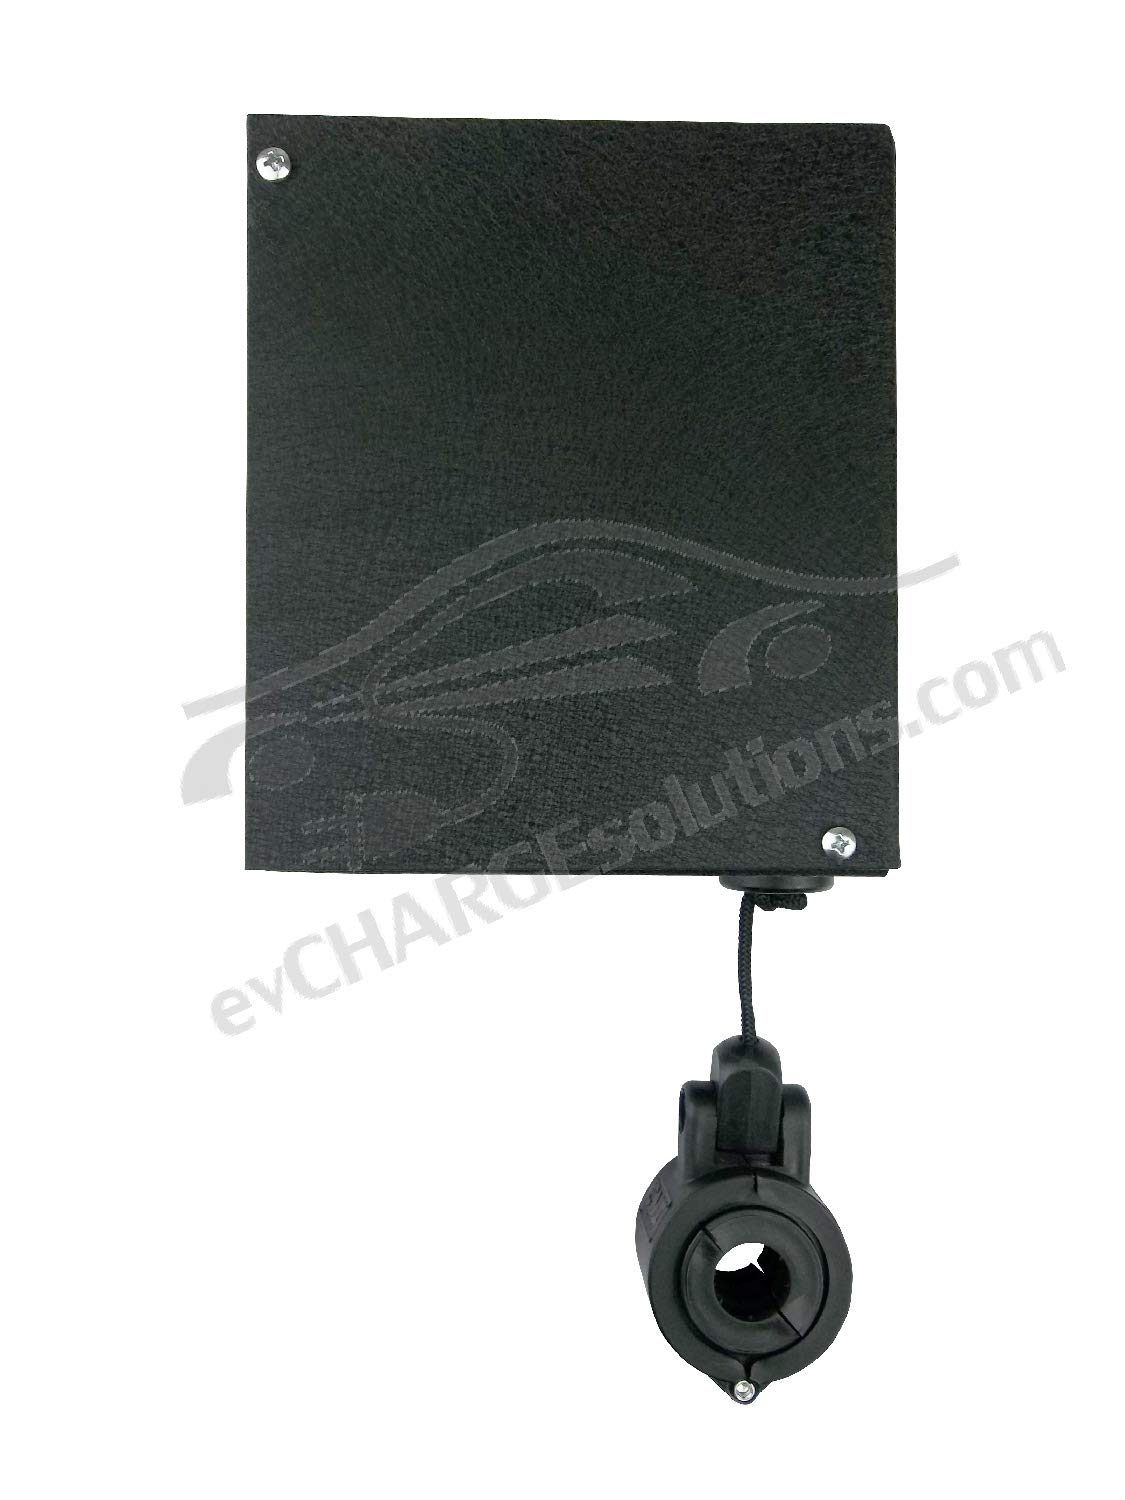 evCHARGEsolutions.com Universal Cable Retractor for Electric Vehicle Charging Cable Management